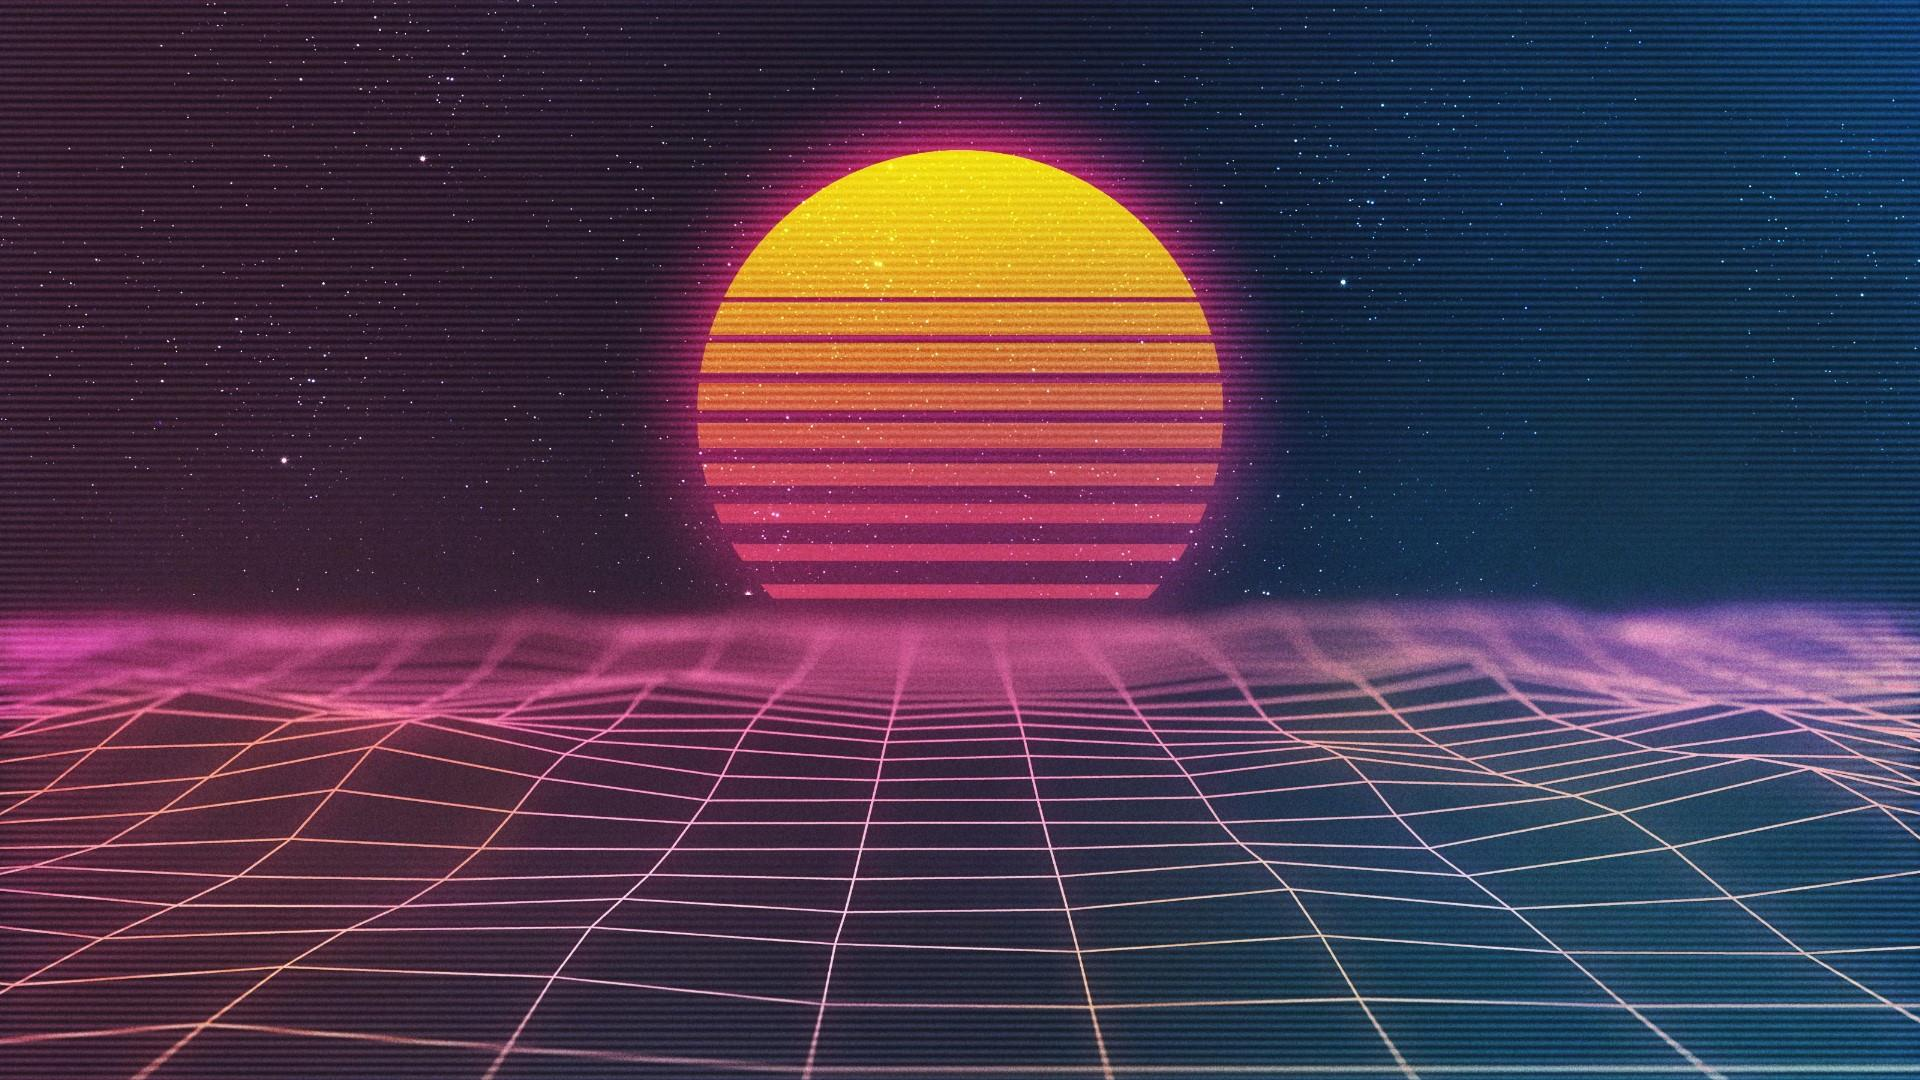 Vaporwave Desktop Wallpapers Top Free Vaporwave Desktop Backgrounds Wallpaperaccess